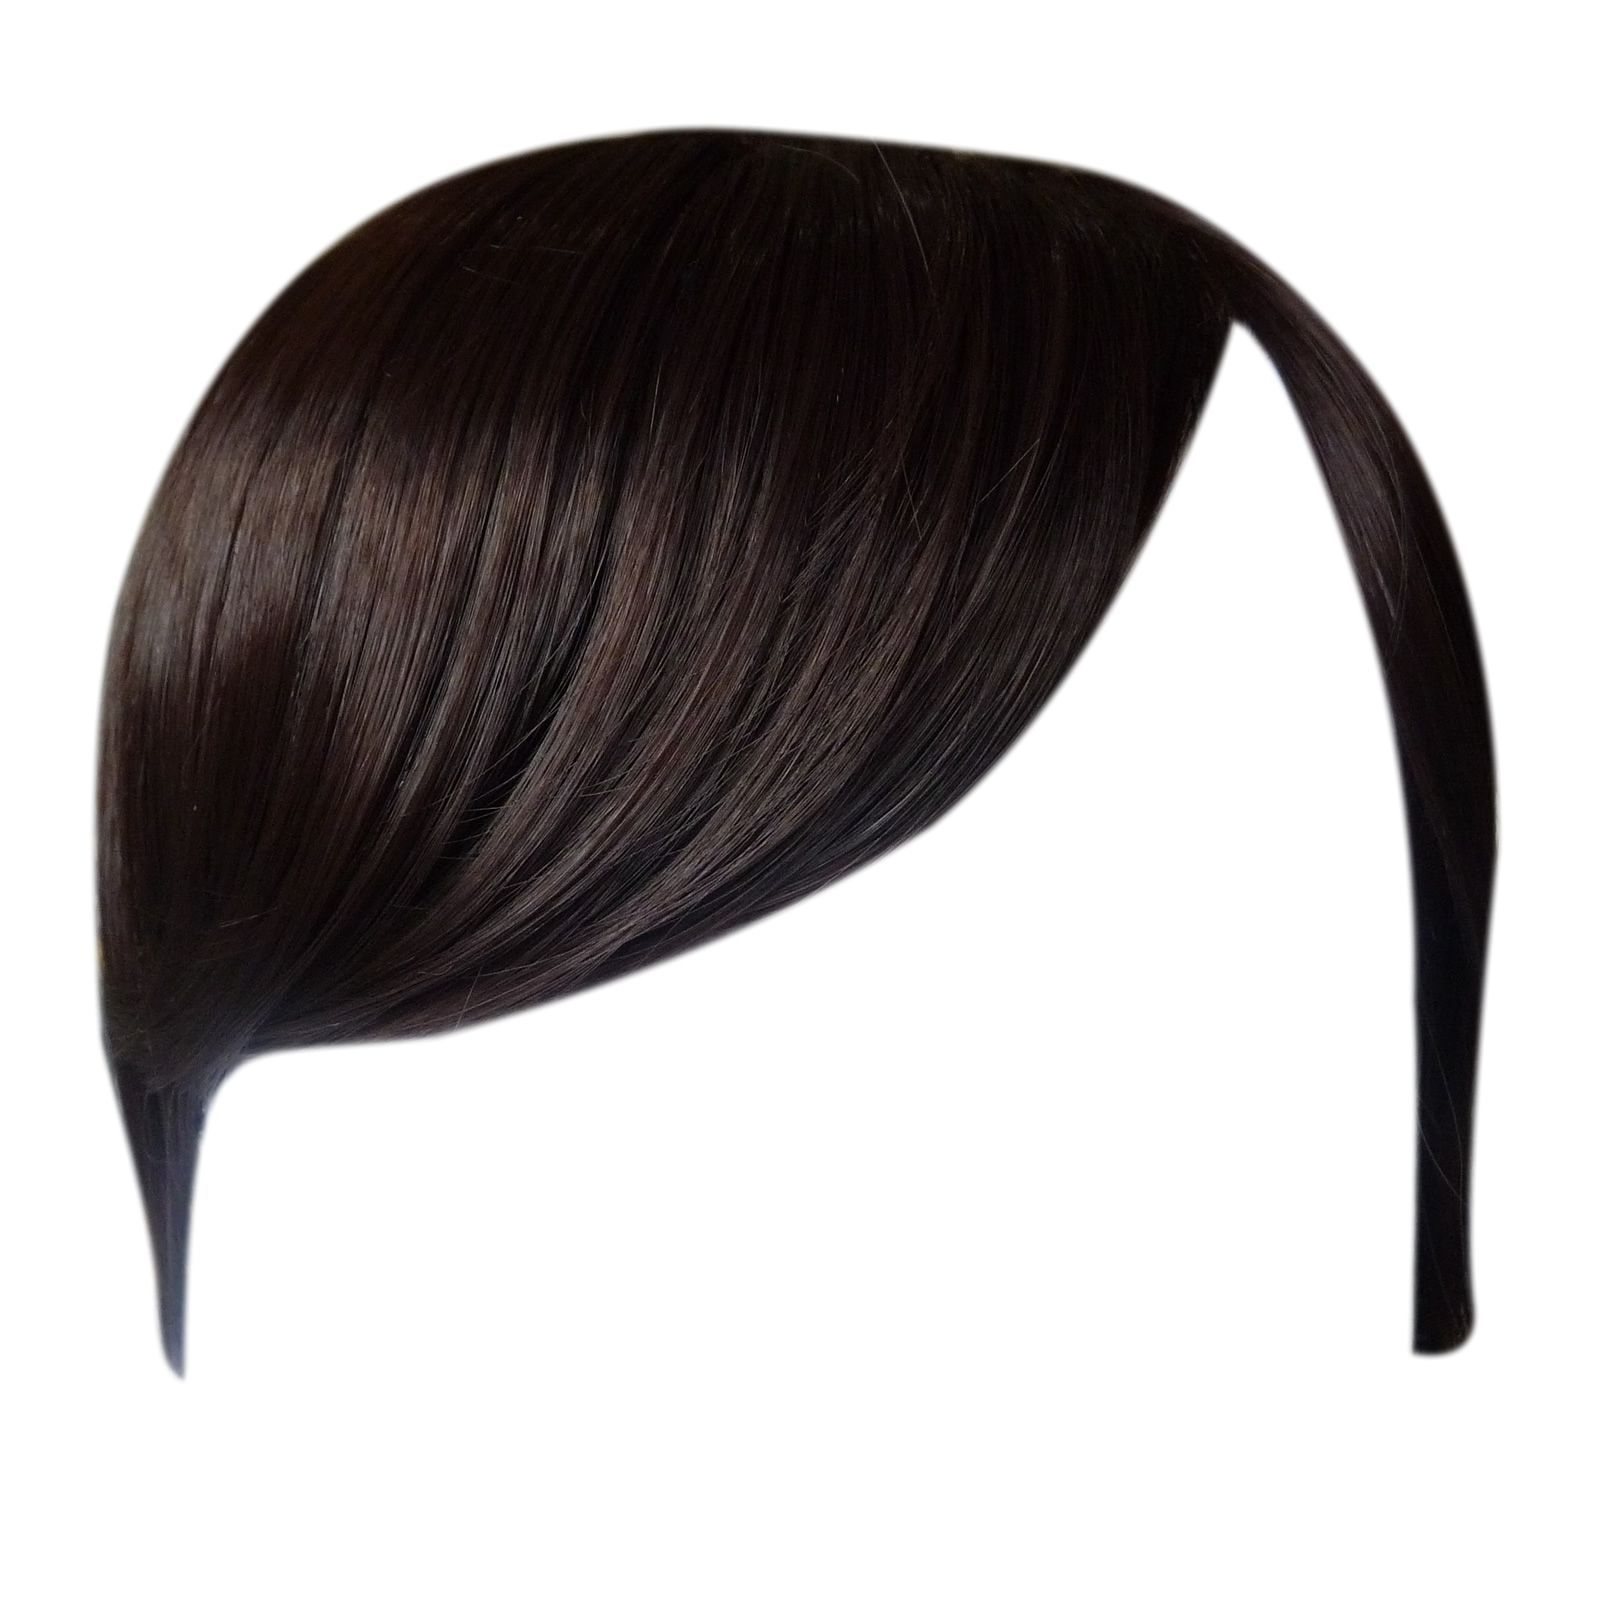 Fringe Bangs Clip In On Hair Extensions Straight Choose